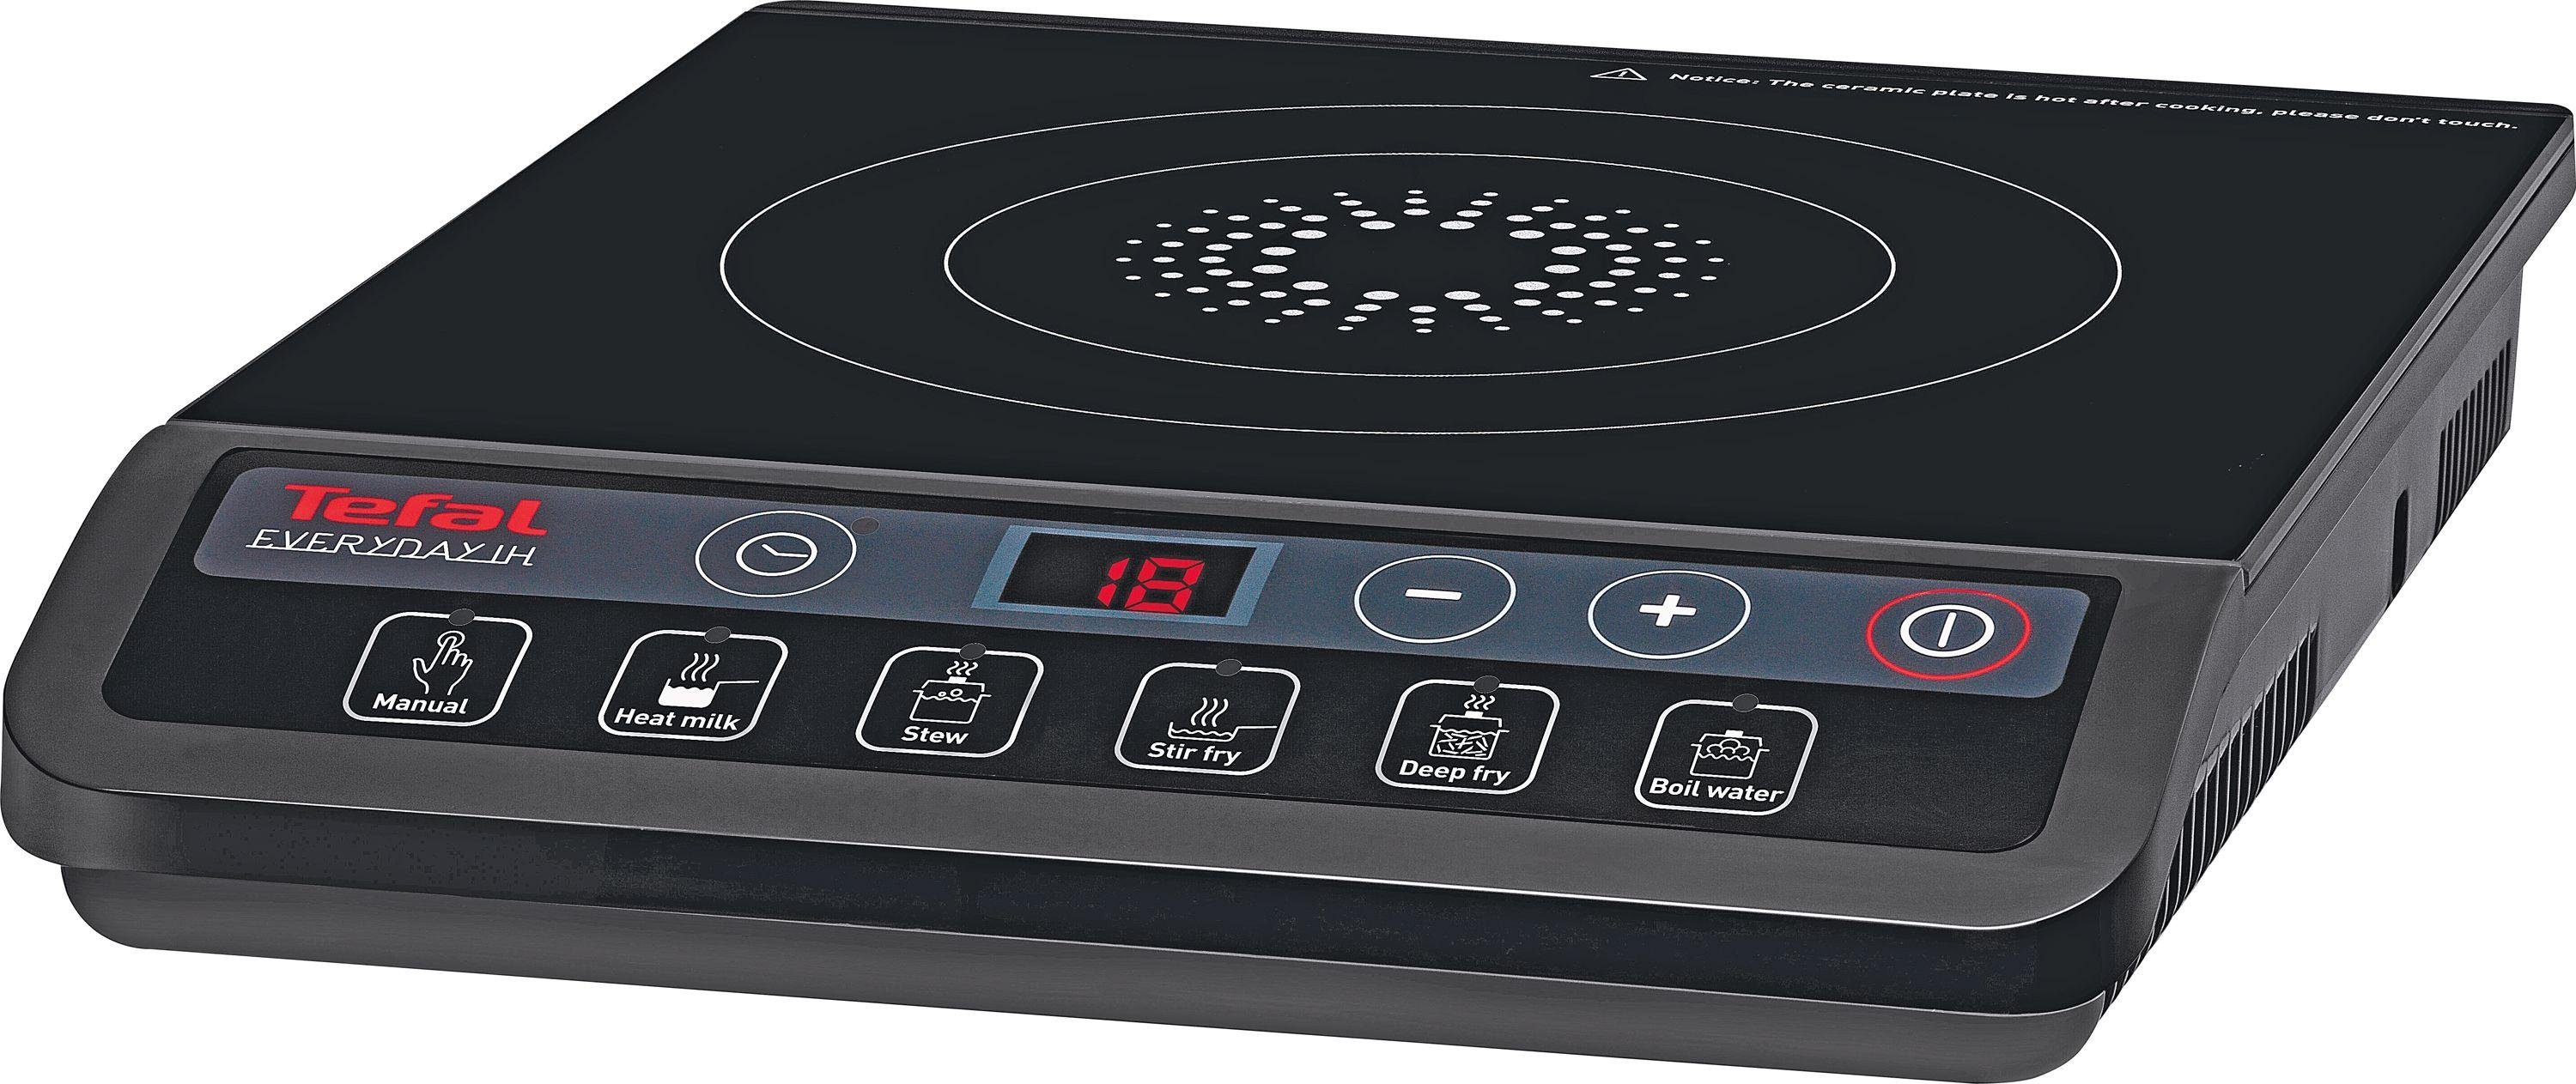 Tefal - IH201840 Induction Hob - Black